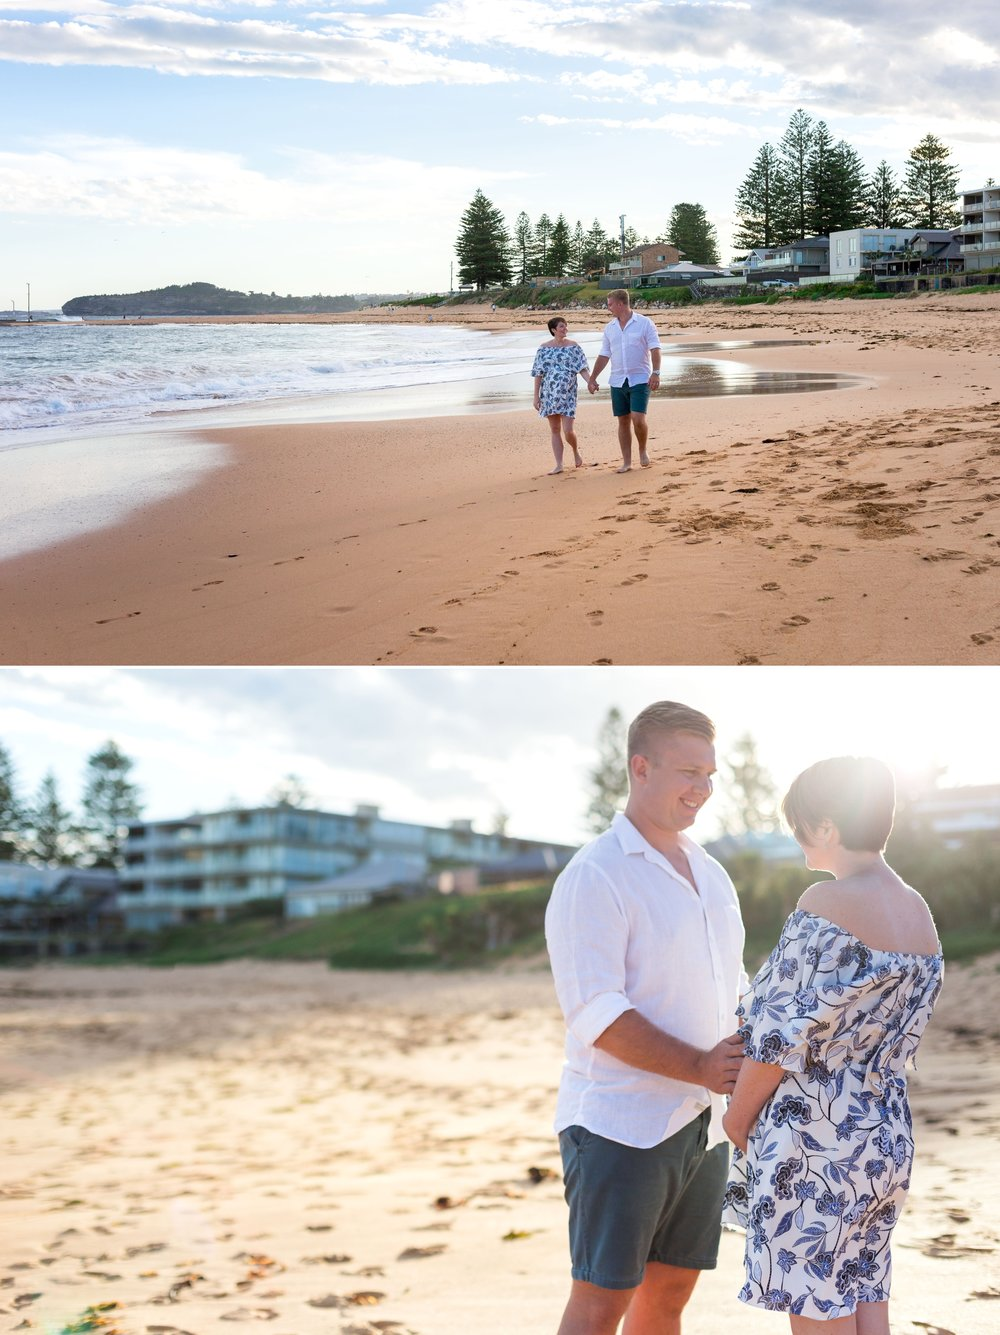 sydney beach maternity session images